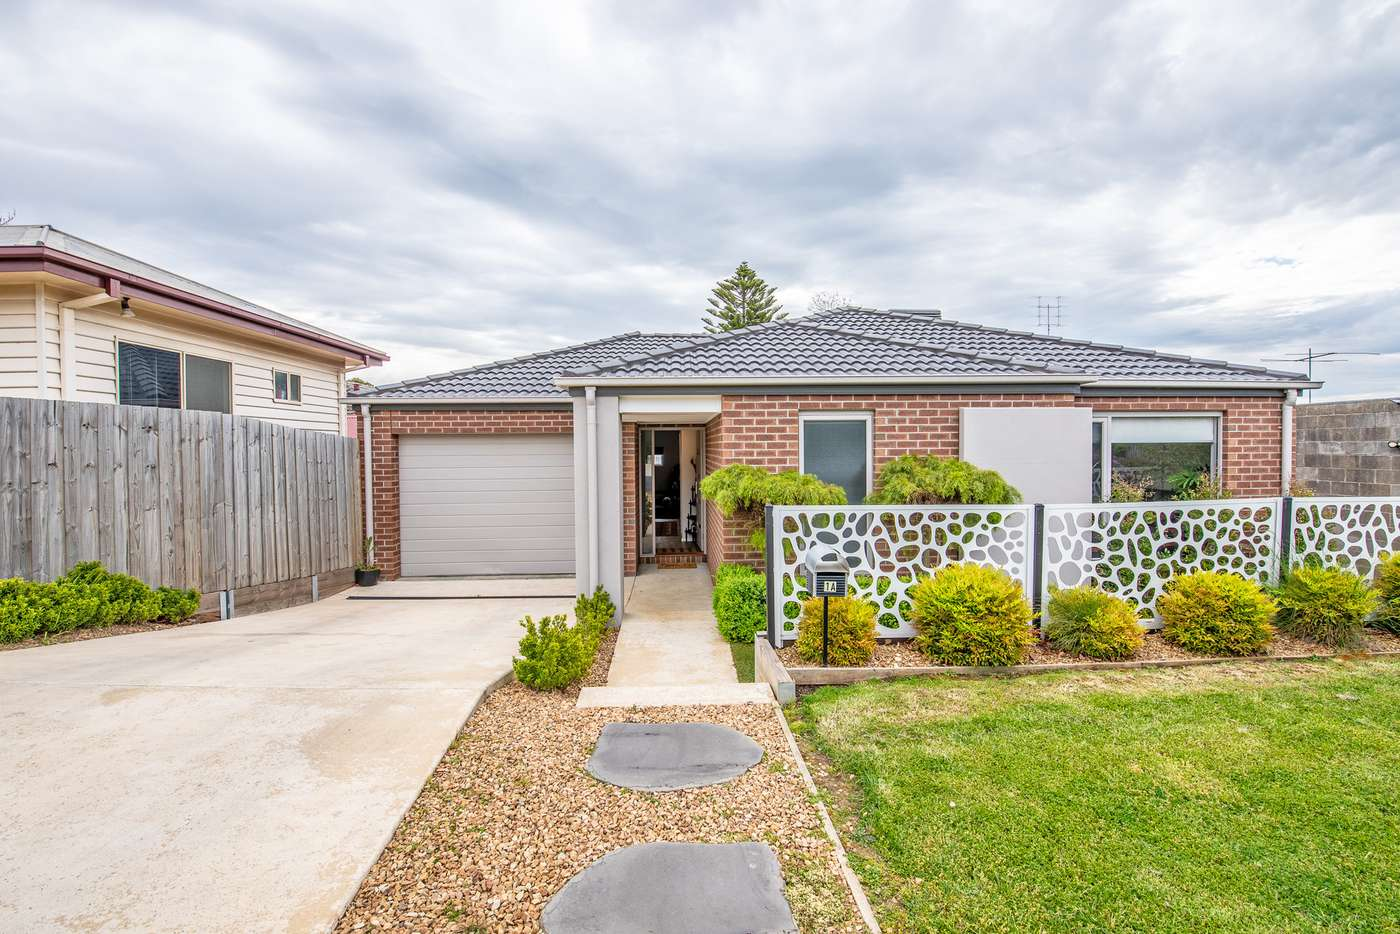 Main view of Homely house listing, 1A Hillside Drive, Ballarat North VIC 3350